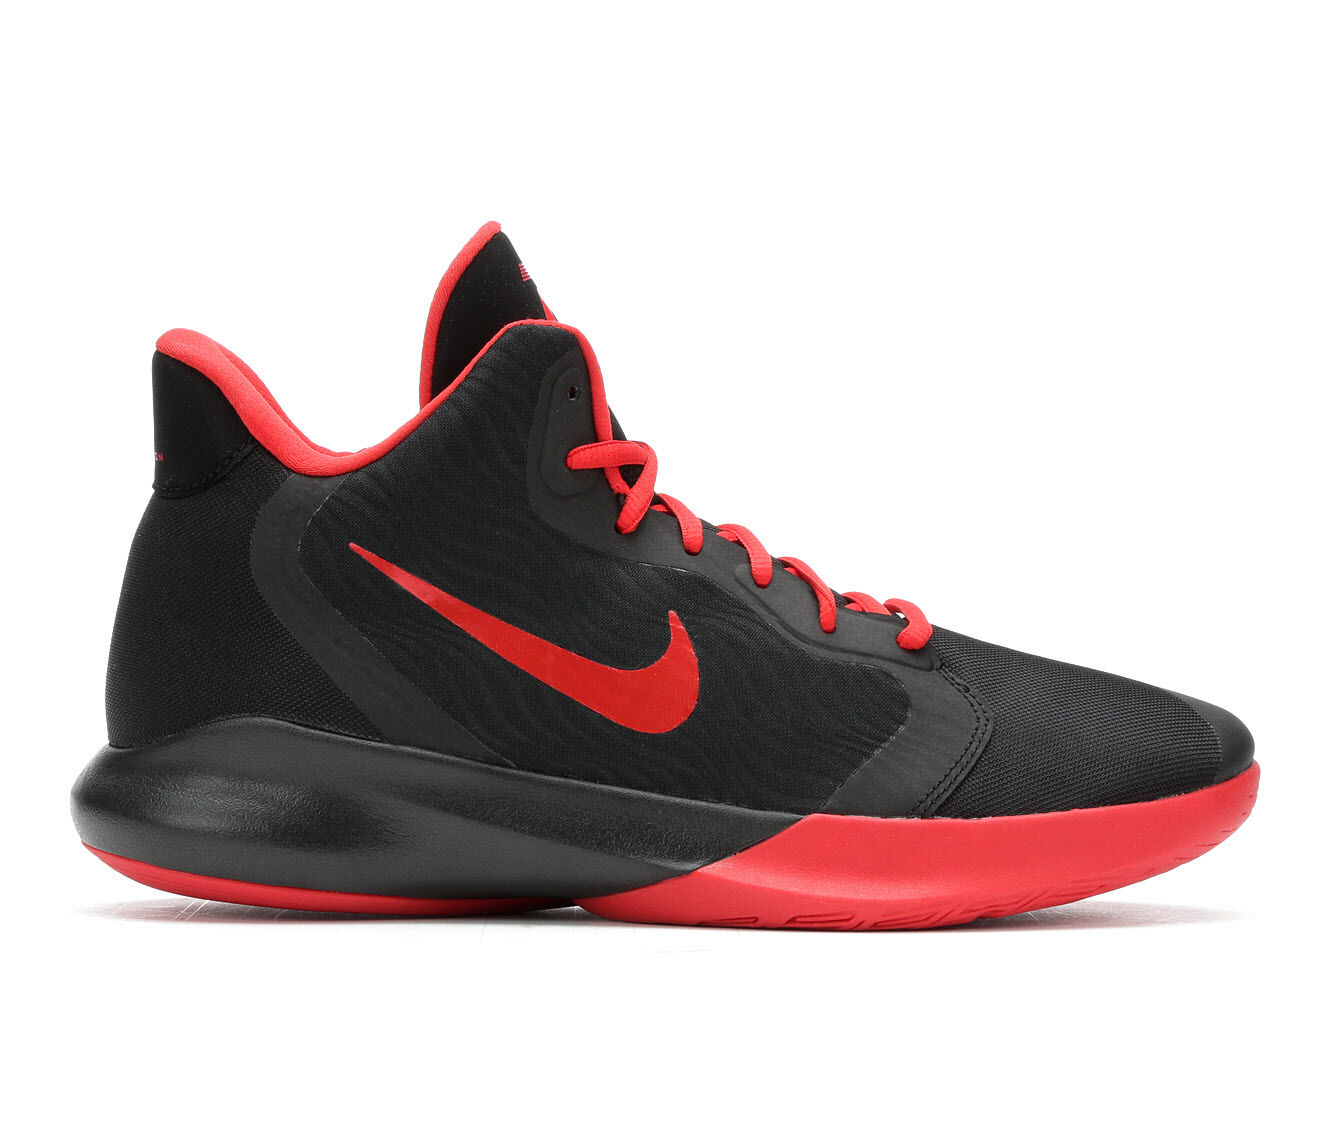 Men's Nike Precision III Basketball Shoes Blk/Red/Wht 001